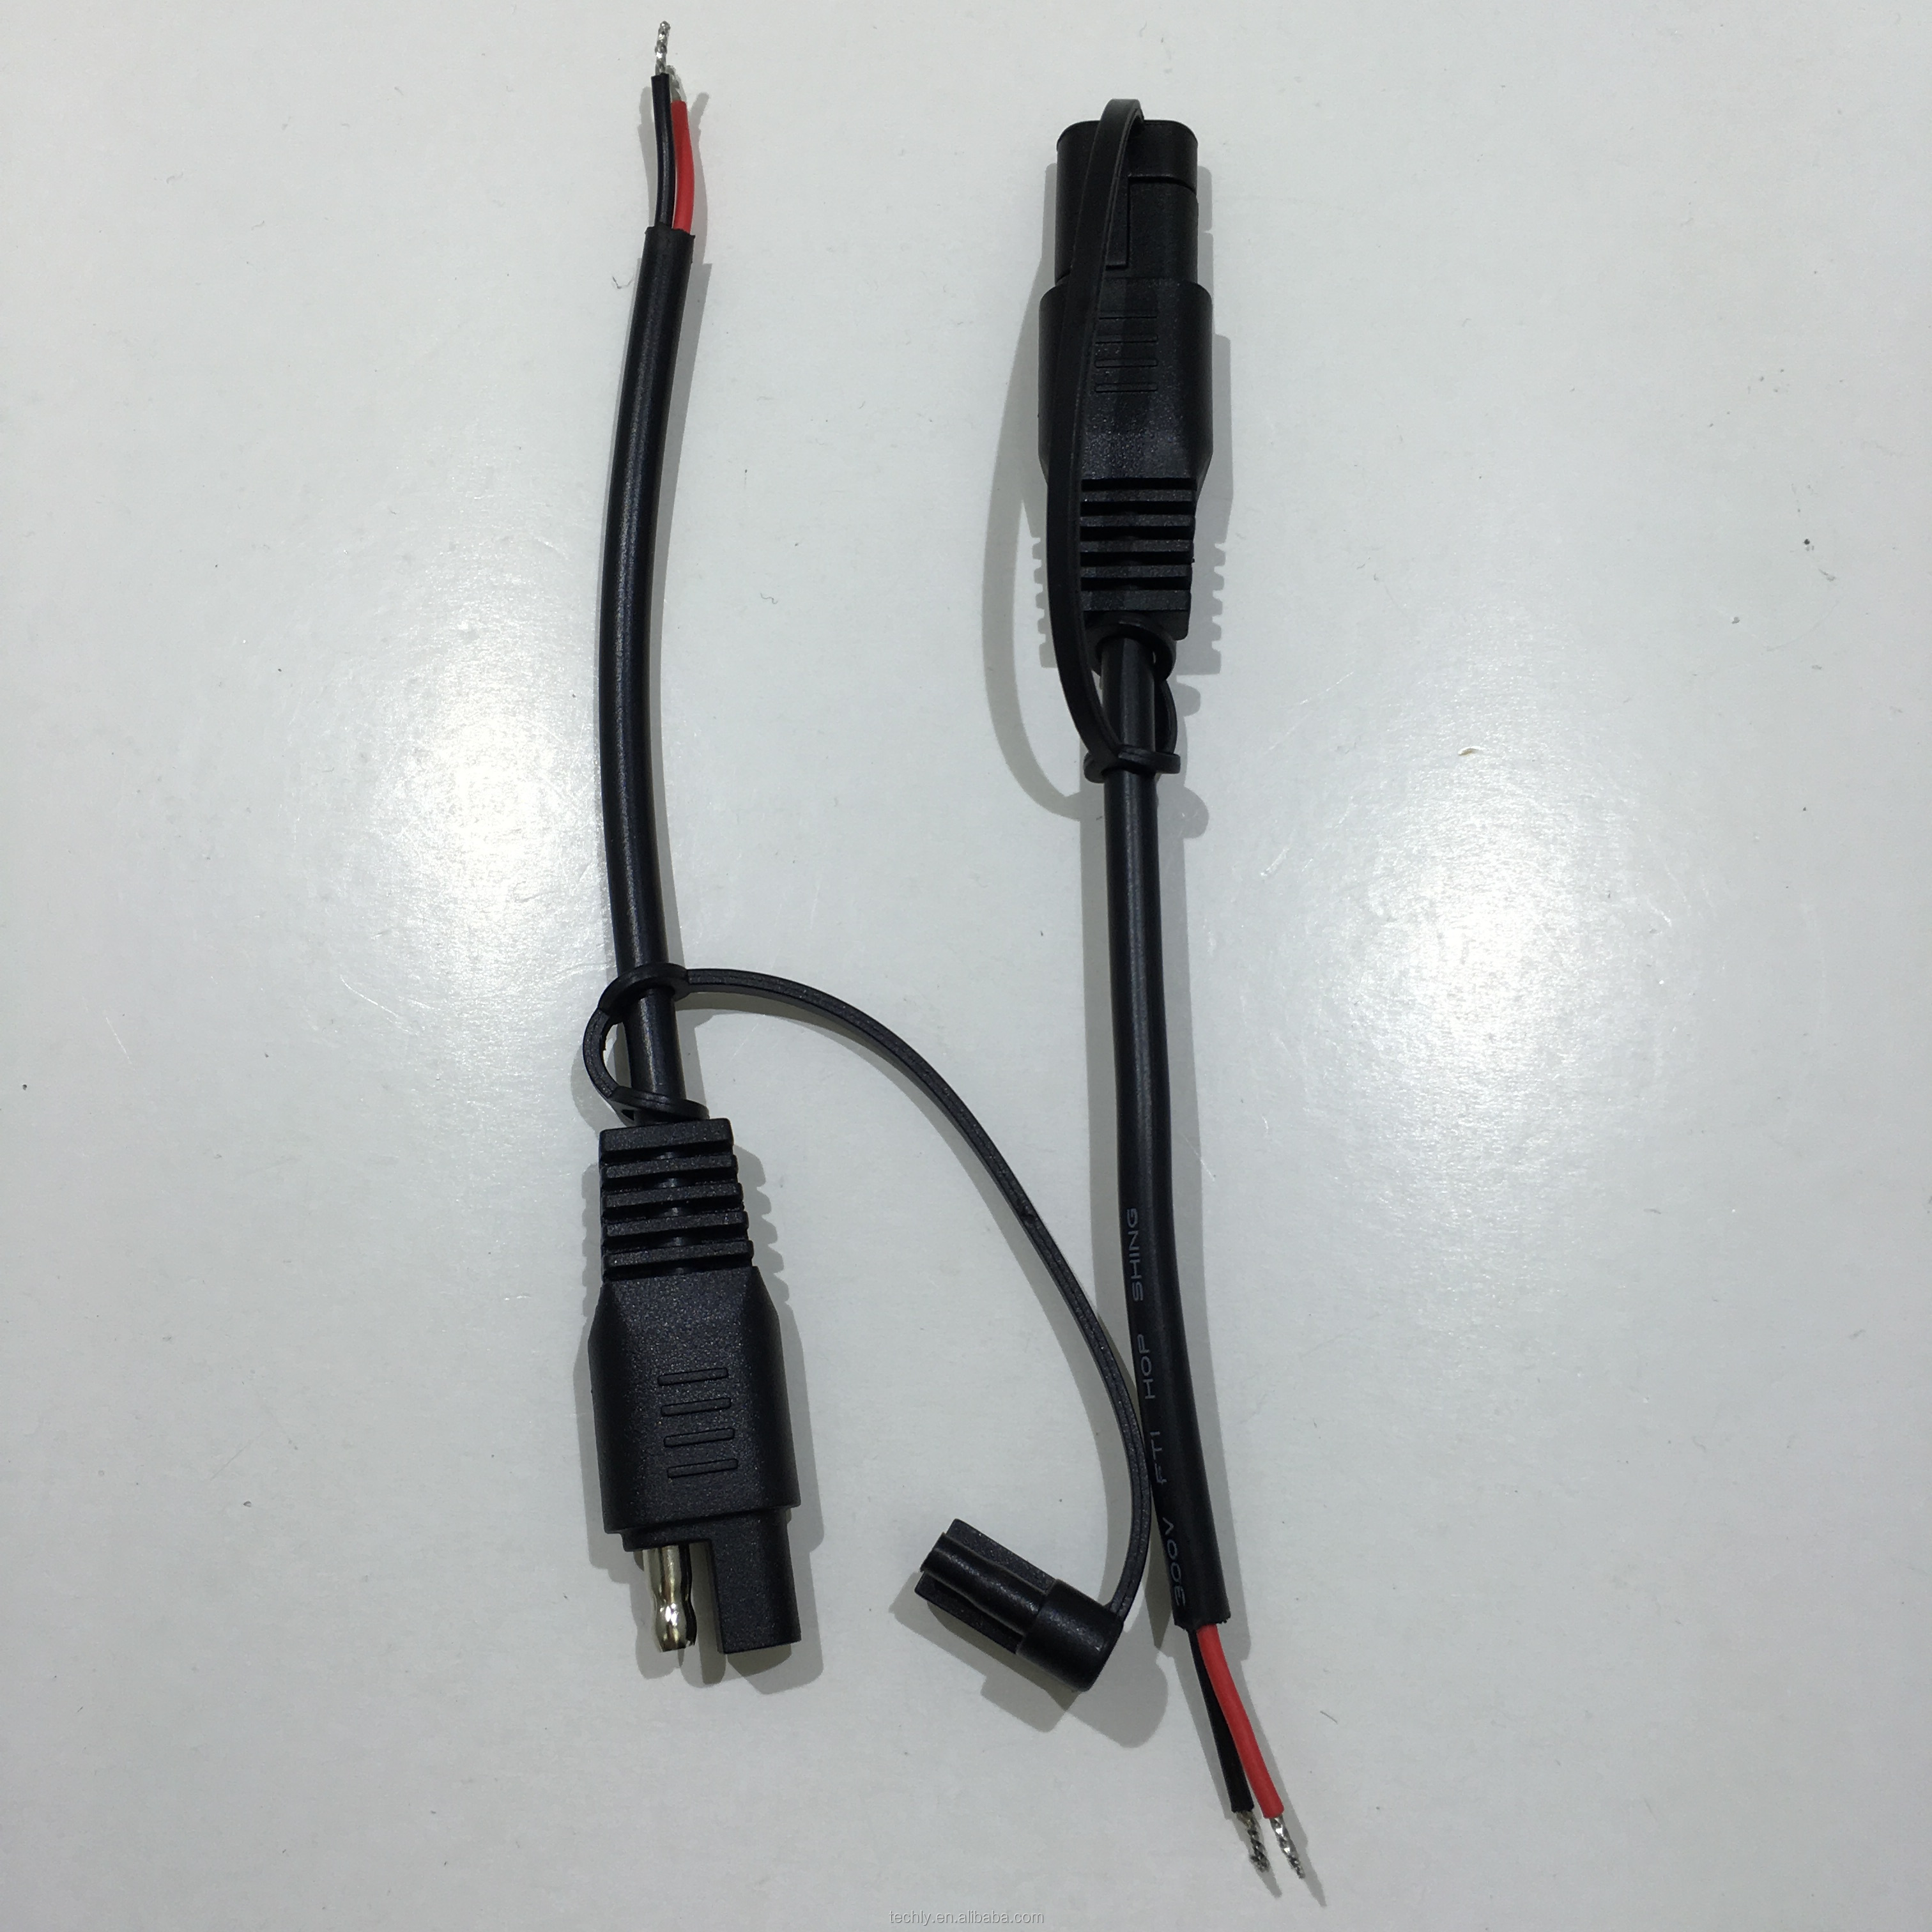 Wireharnesses 18945697890 Cacara Romaway 3 Pin Wire Harness Copper Conductor Connector Cable Harnesses With 600